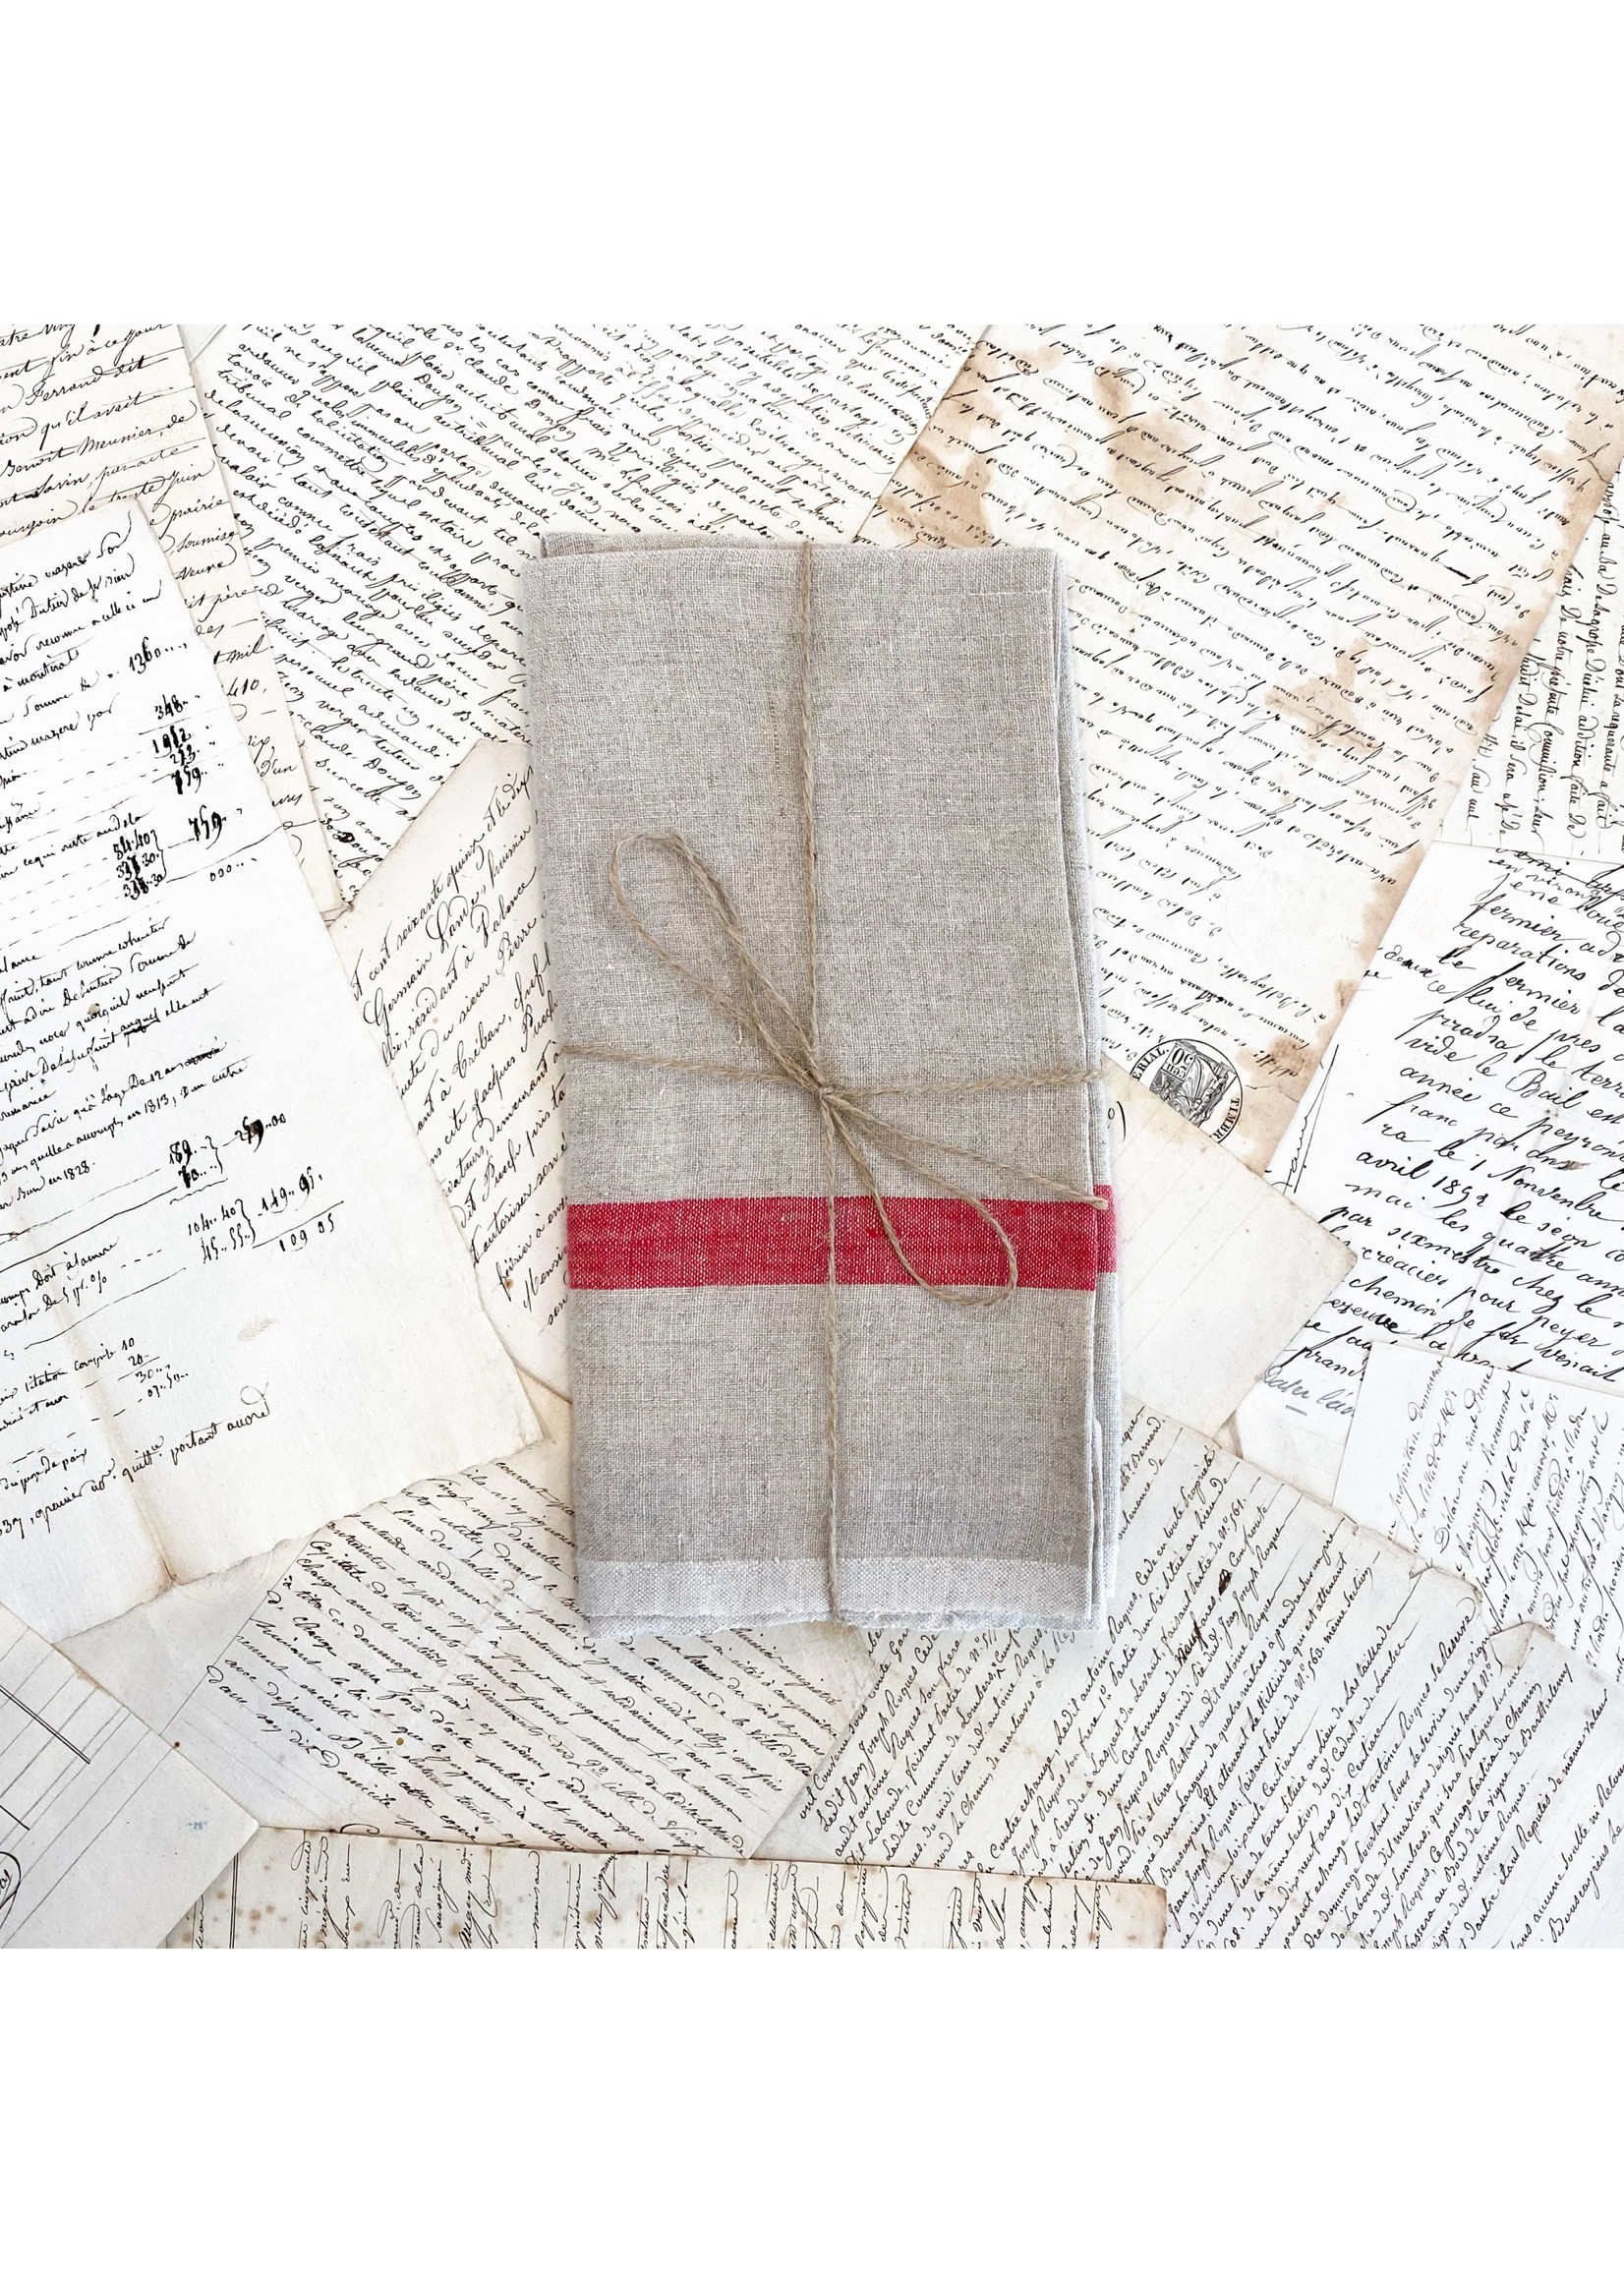 Laundered Linen Tea Towel - Natural and Red